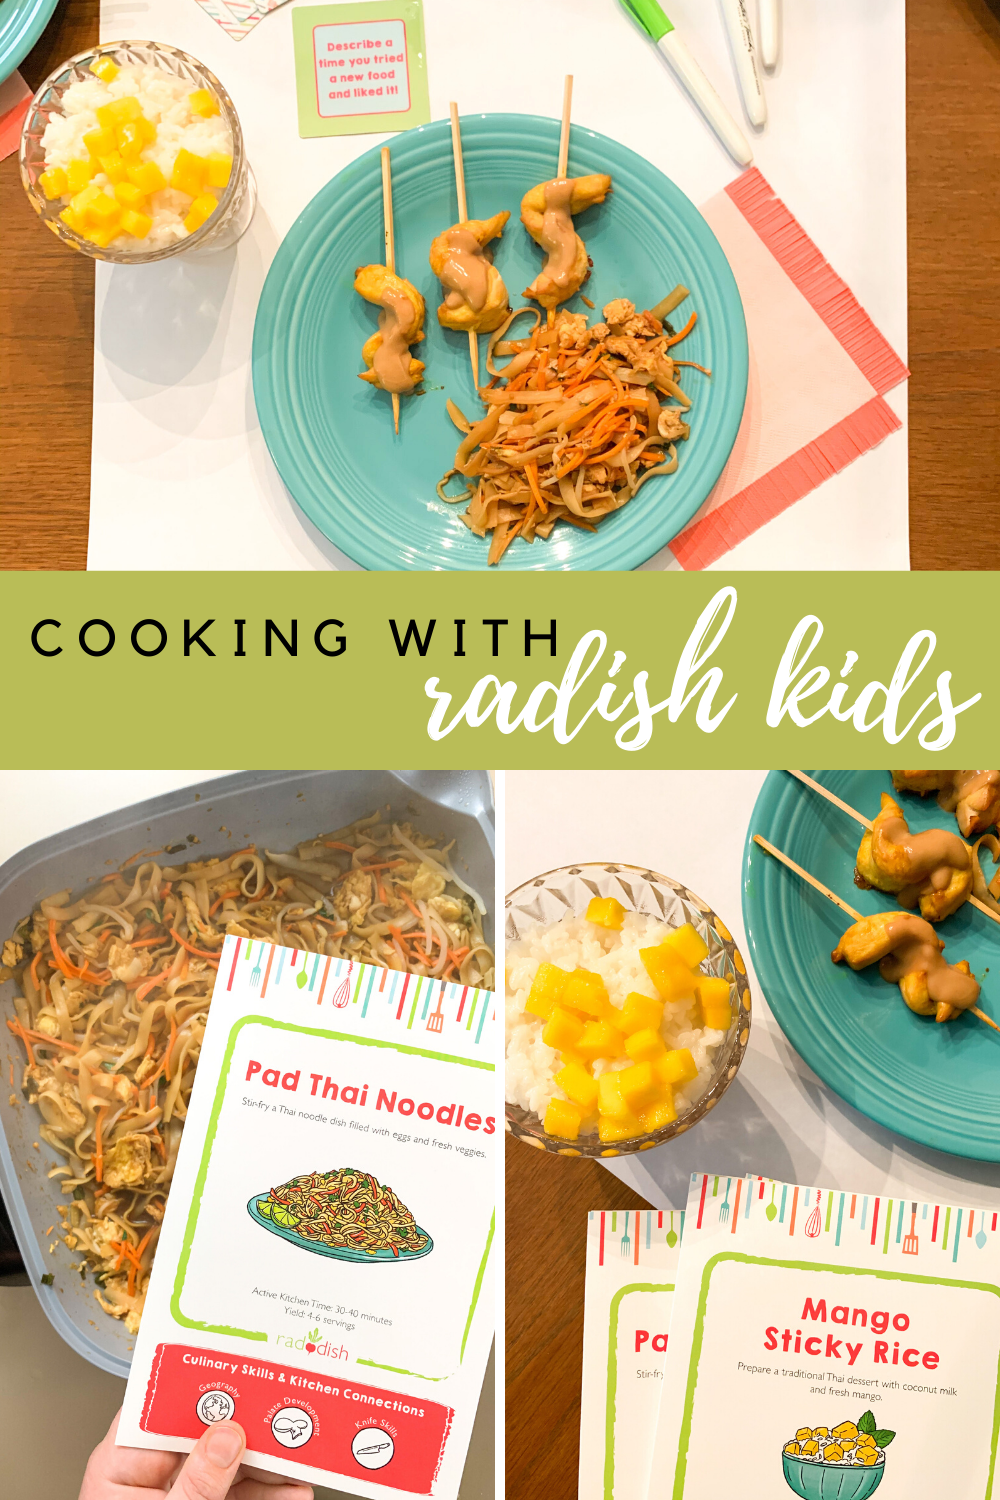 Cooking with Radish Kids